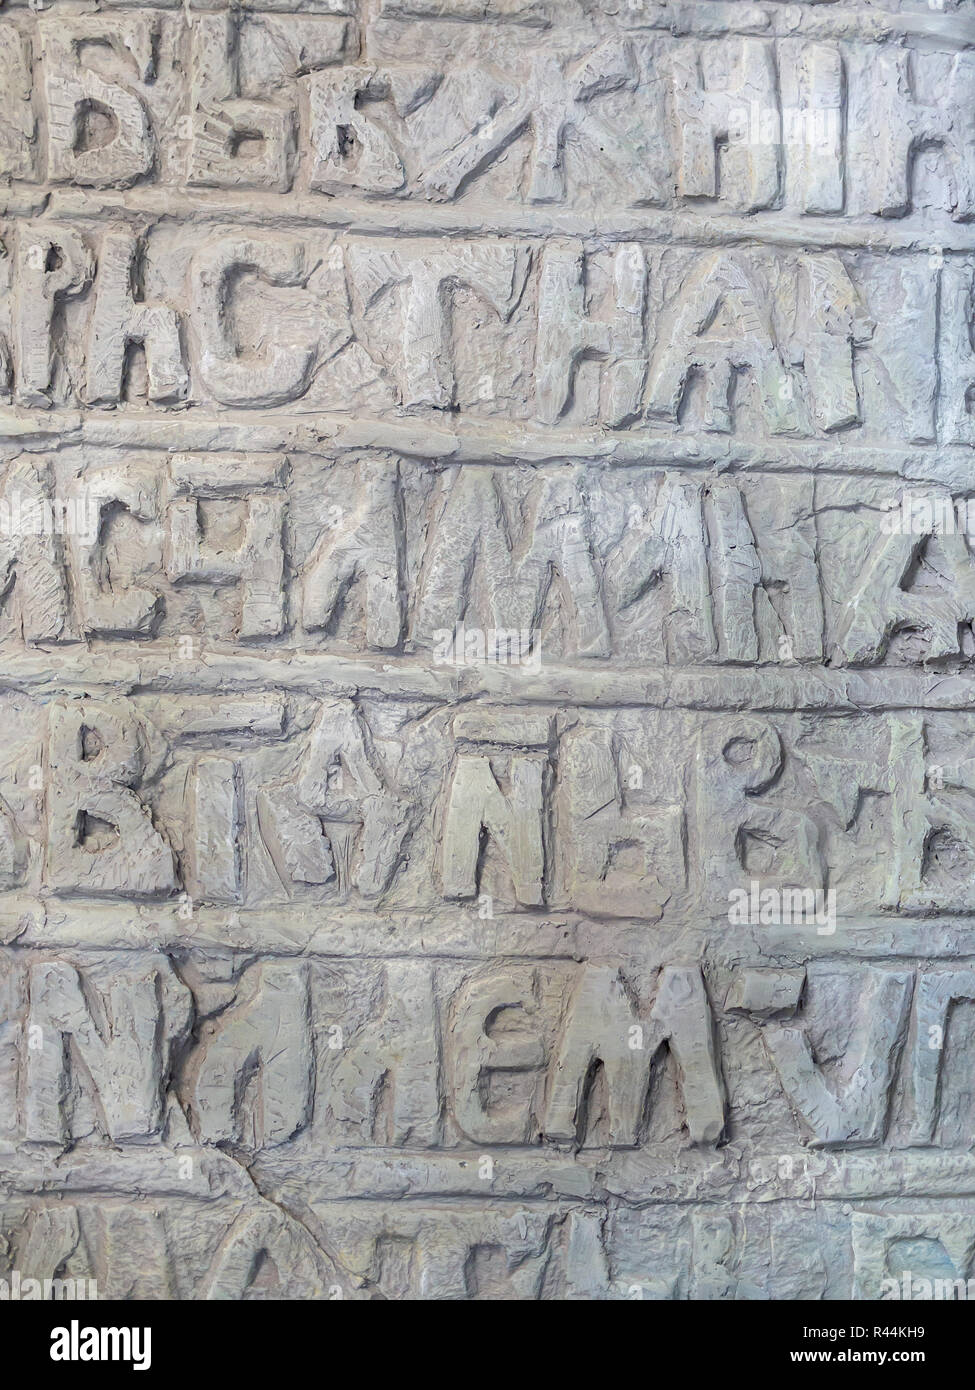 Ancient Slavic illegible inscriptions on a stone, background, texture - Stock Image